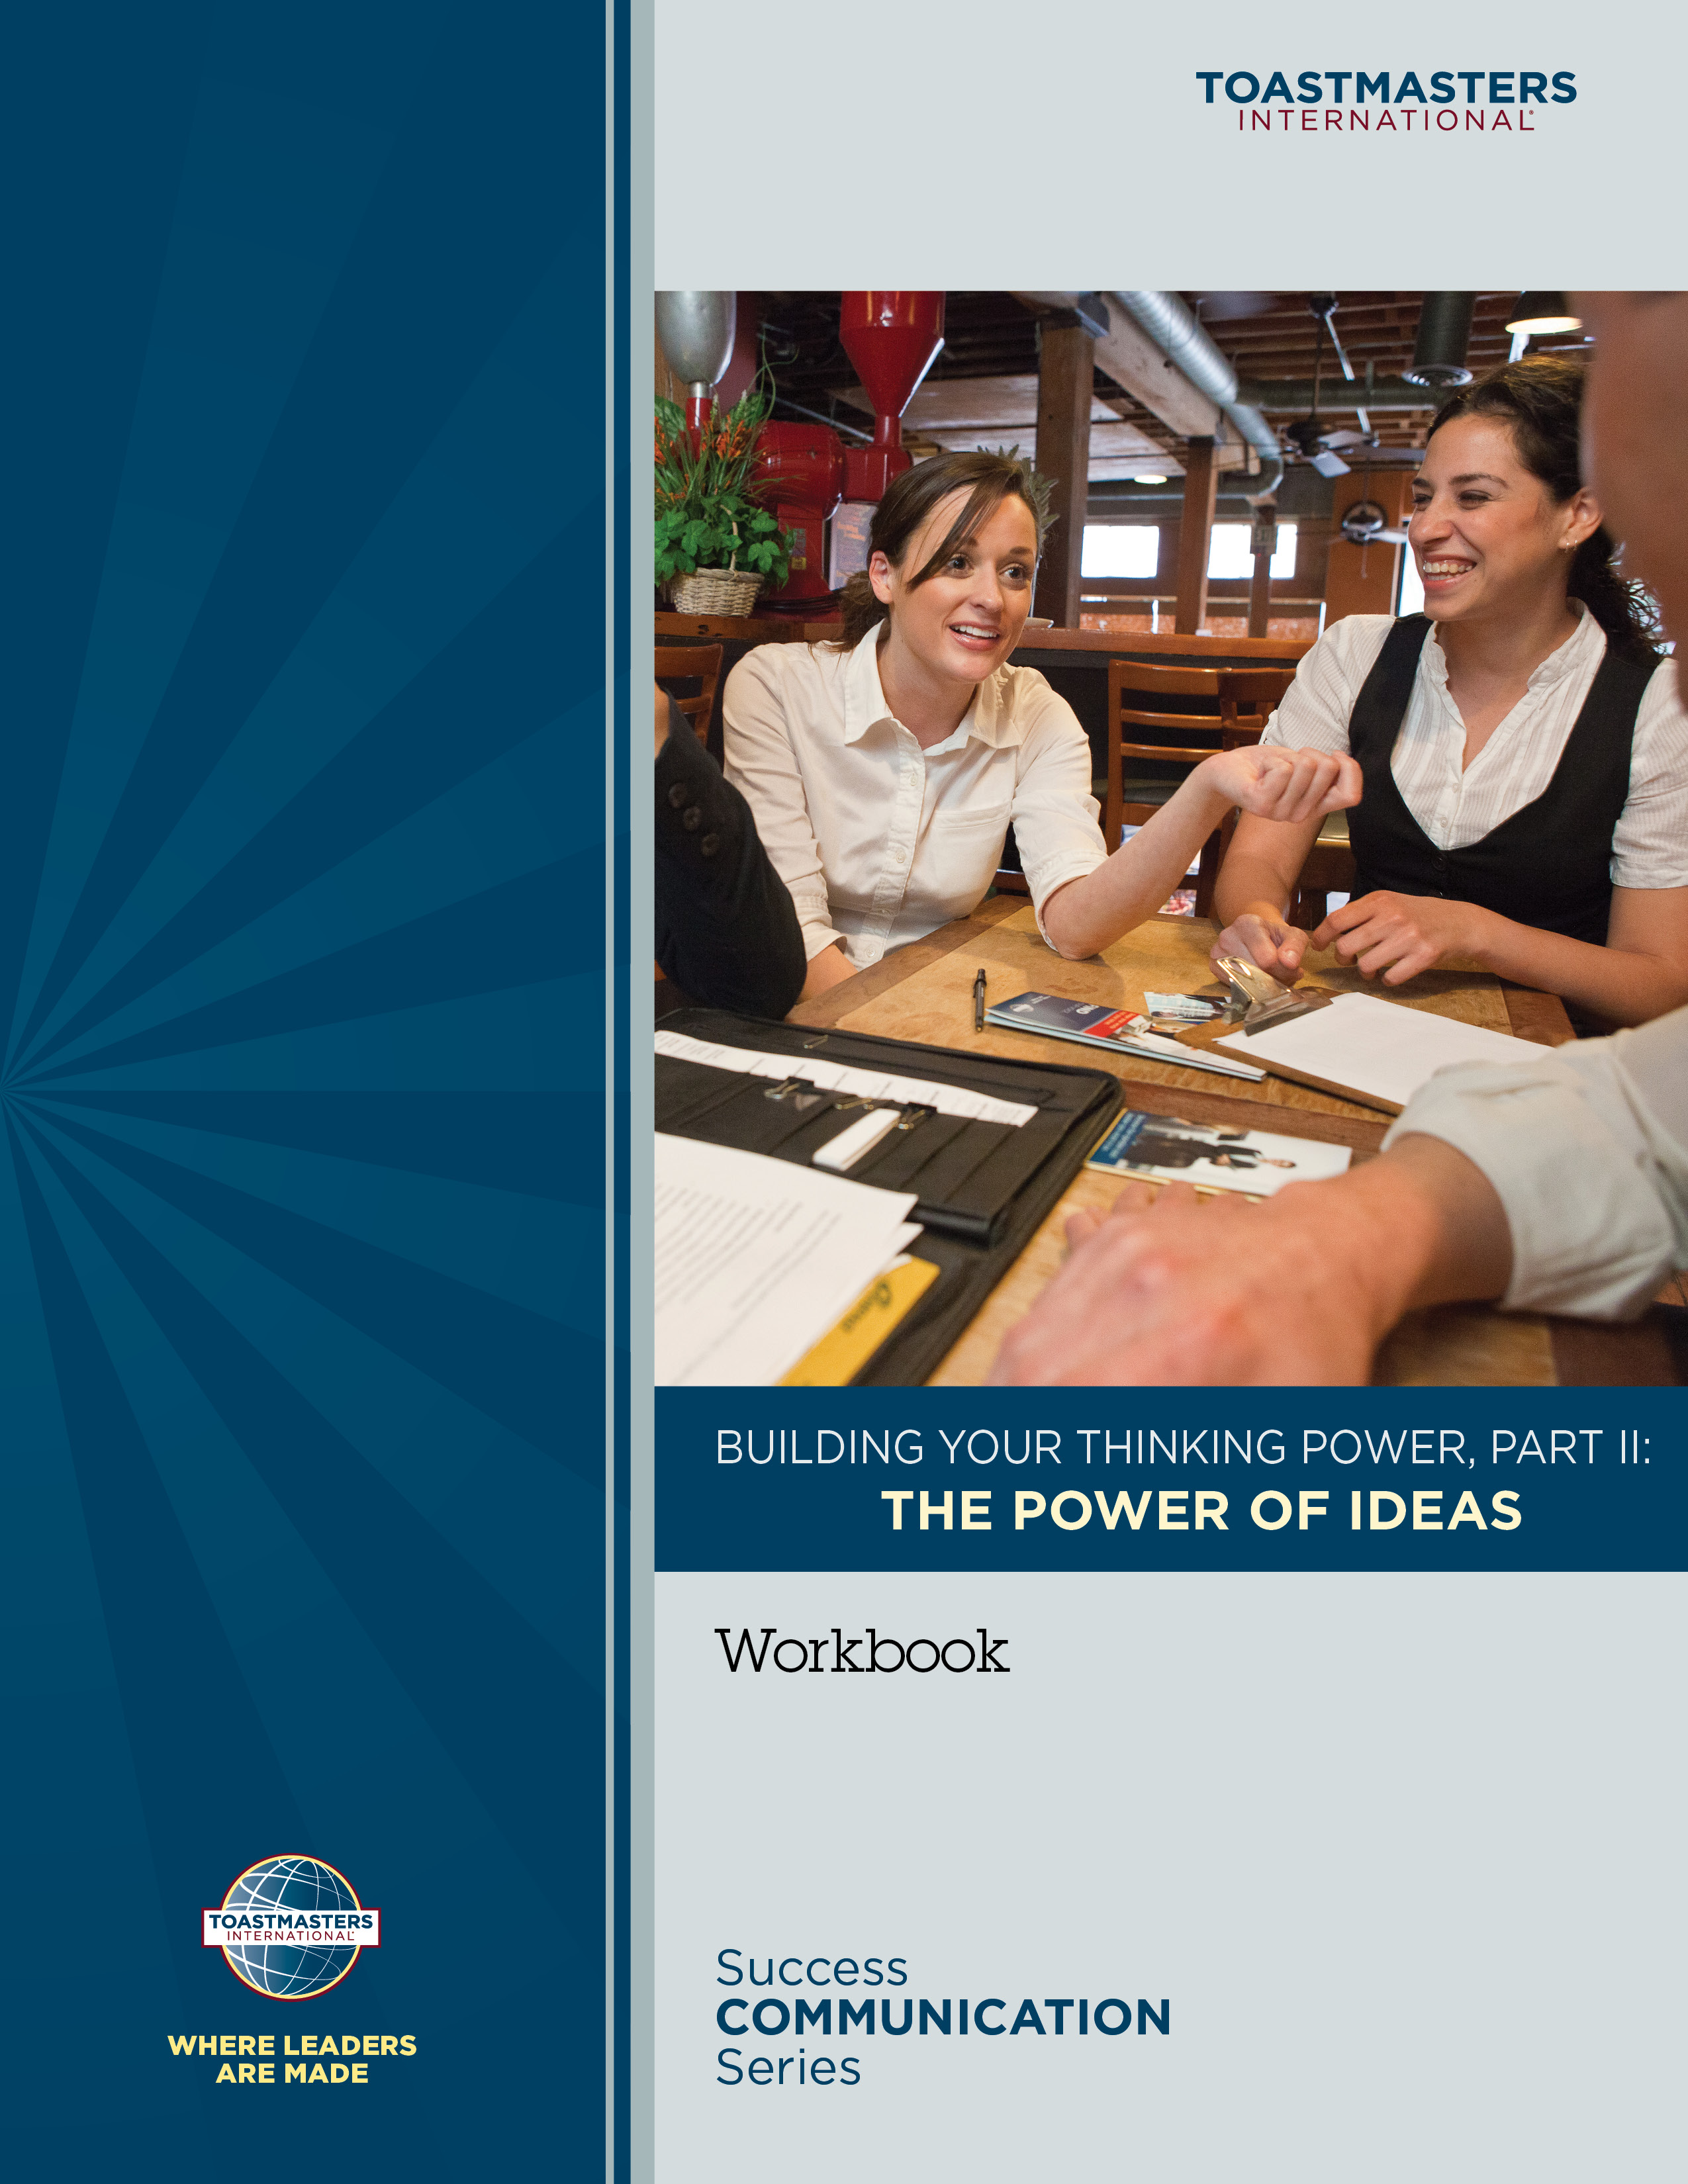 Building Your Thinking Power, Part II Workbook